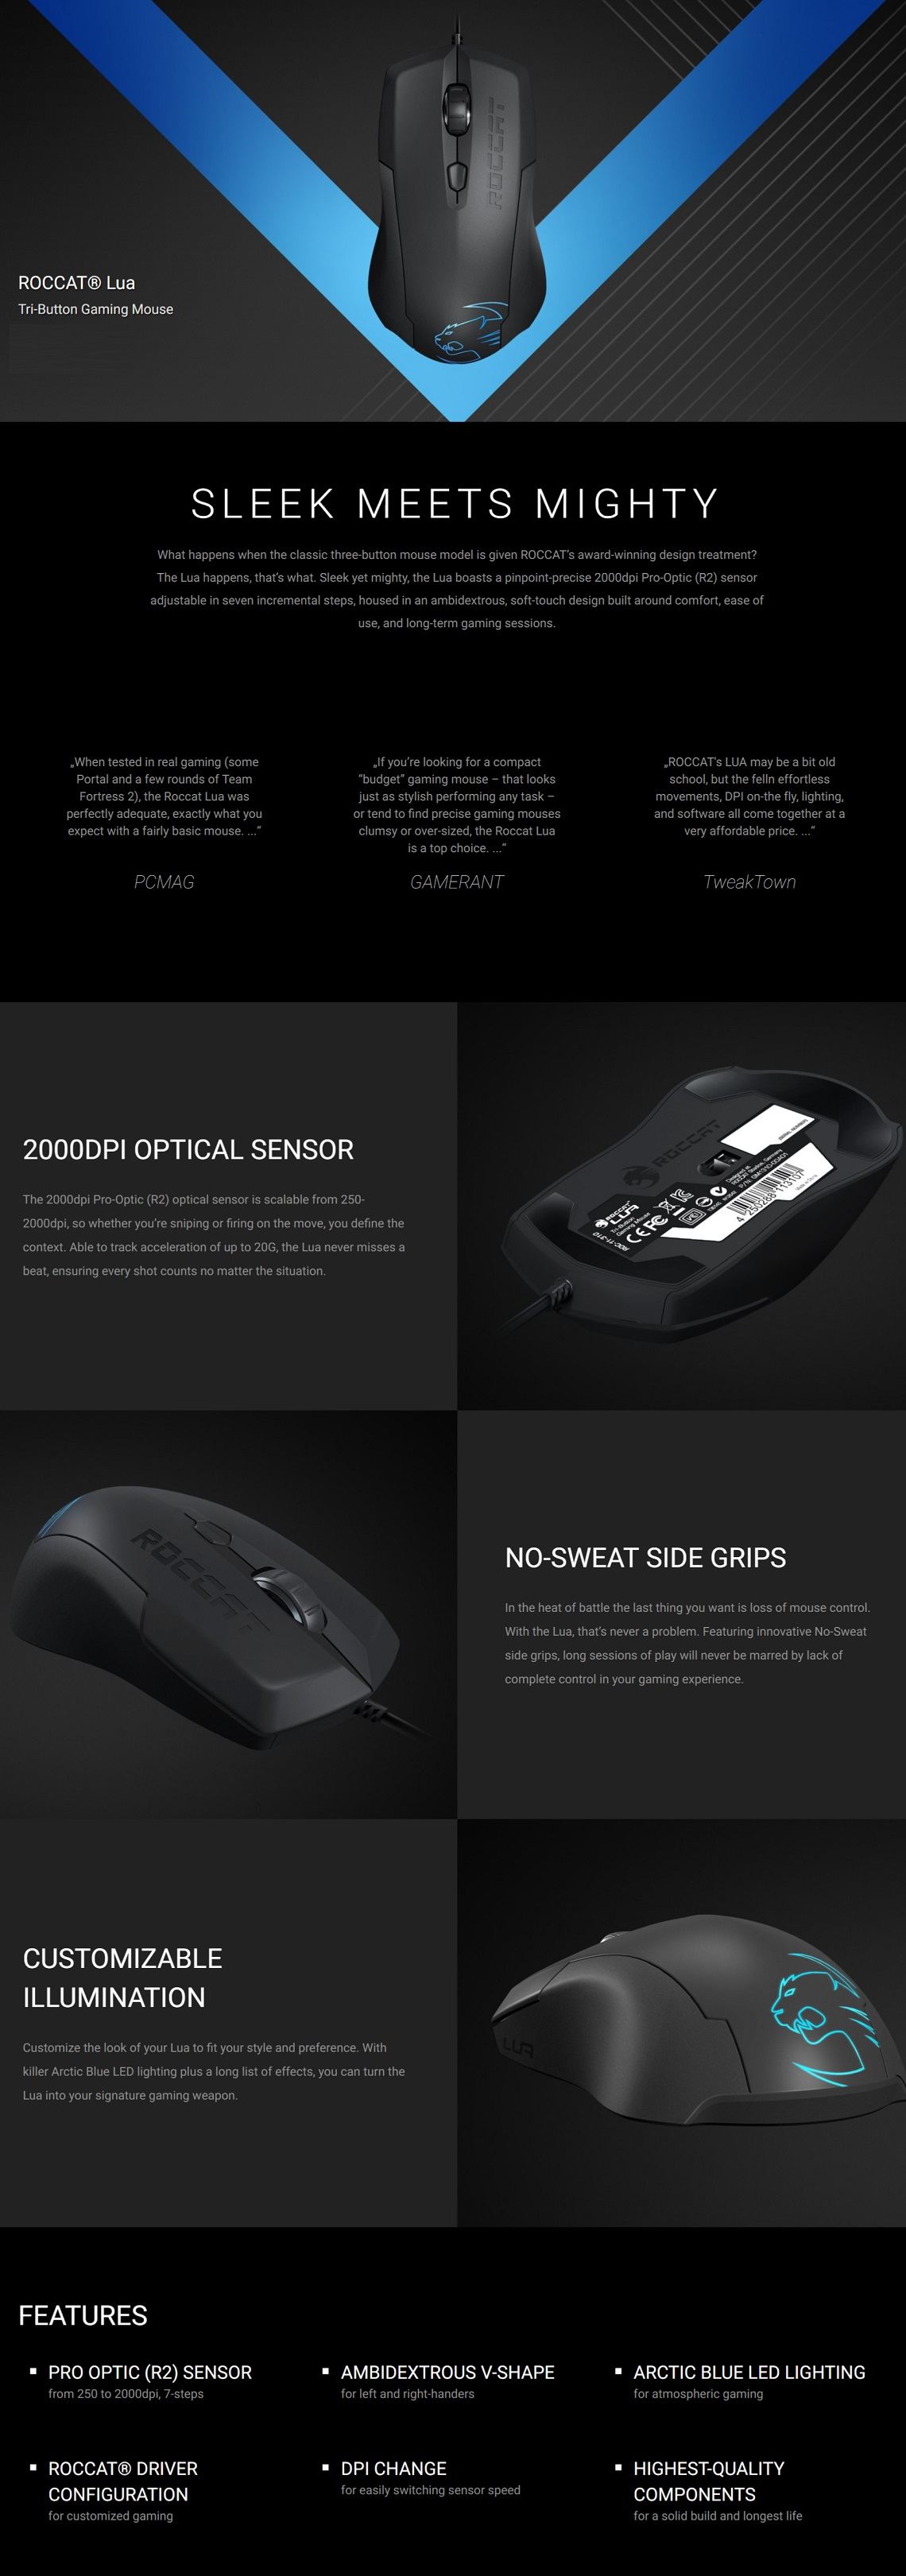 Roccat Lua Tri-Button Gaming Mouse Up to 2000dpi Pro-Optic (R2) Arctic Blue LED